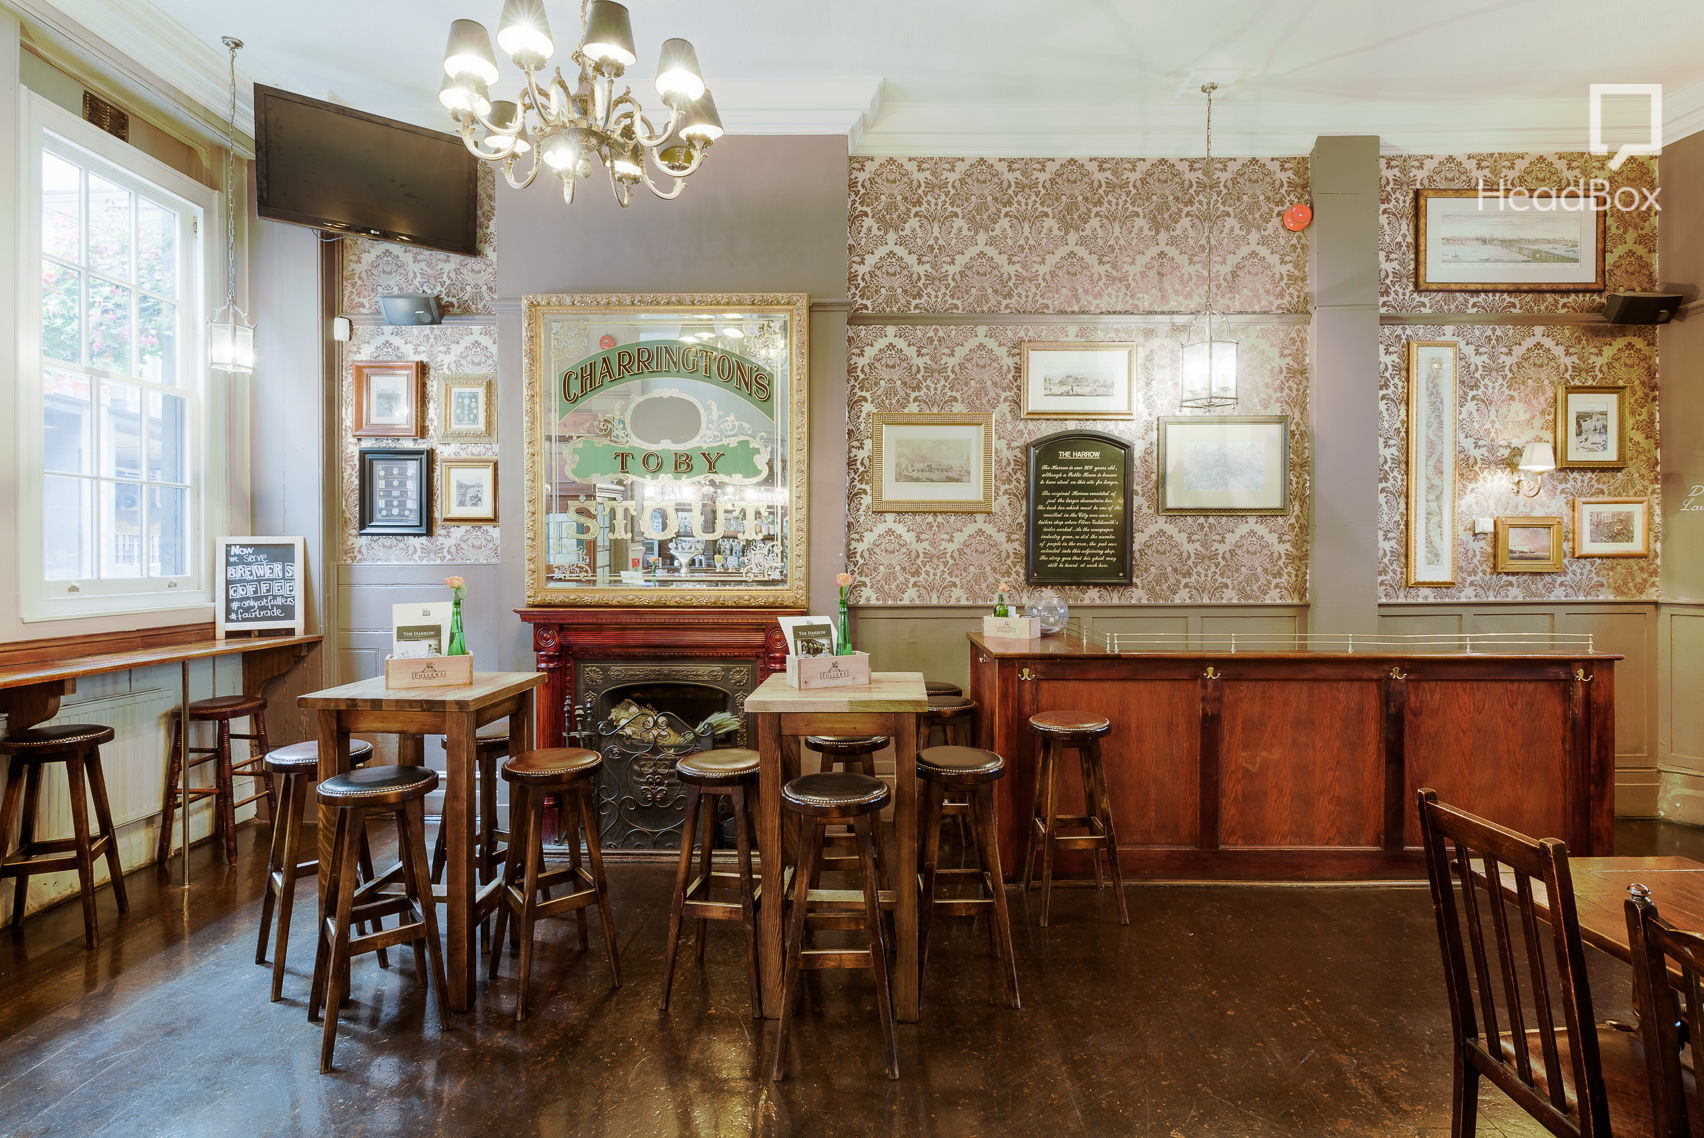 Well-lit bar with high wooden chairs and tables with patterned wallpaper and a decorated mirror on the back wall